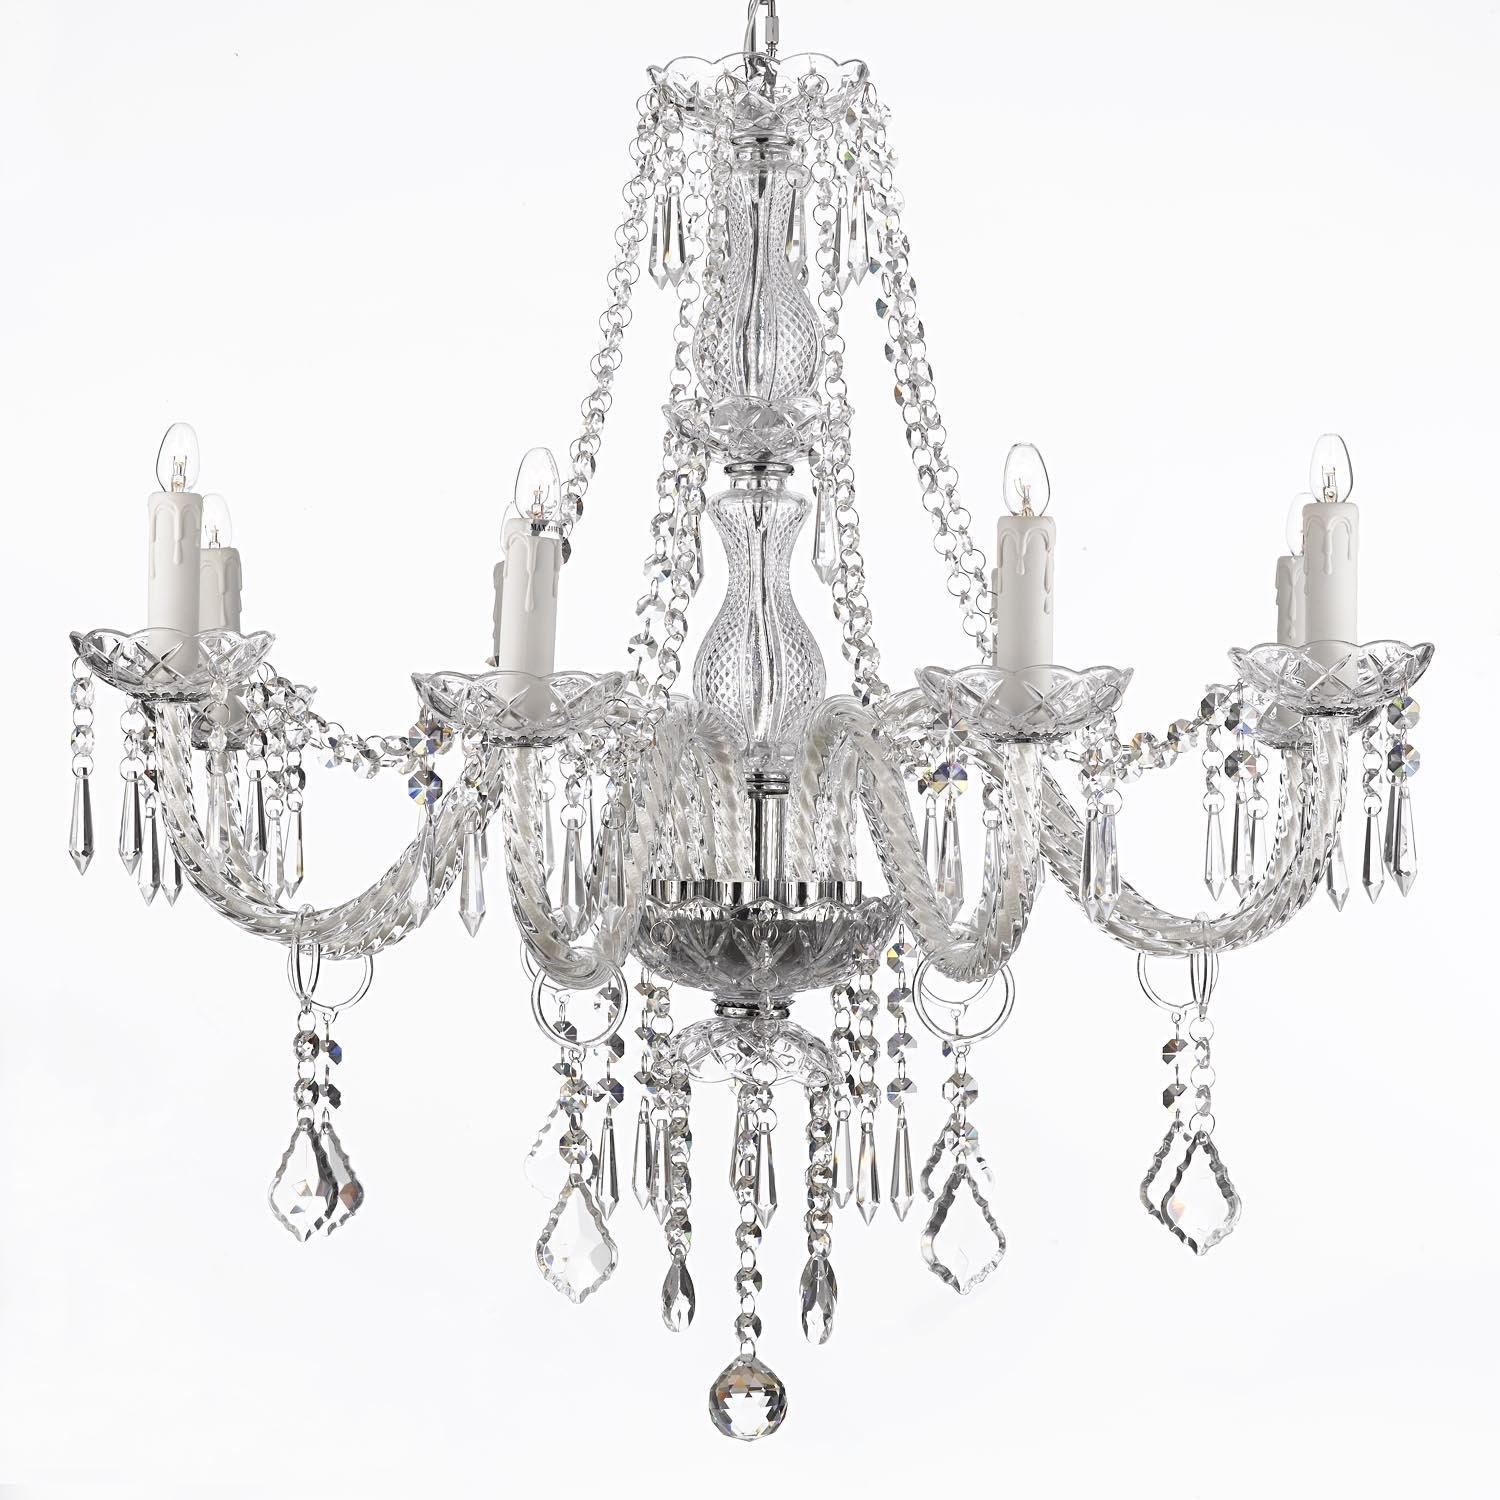 Furniture Beautiful Chandeliers Target For Lighting And Ceiling Within Small Glass Chandeliers (View 7 of 12)